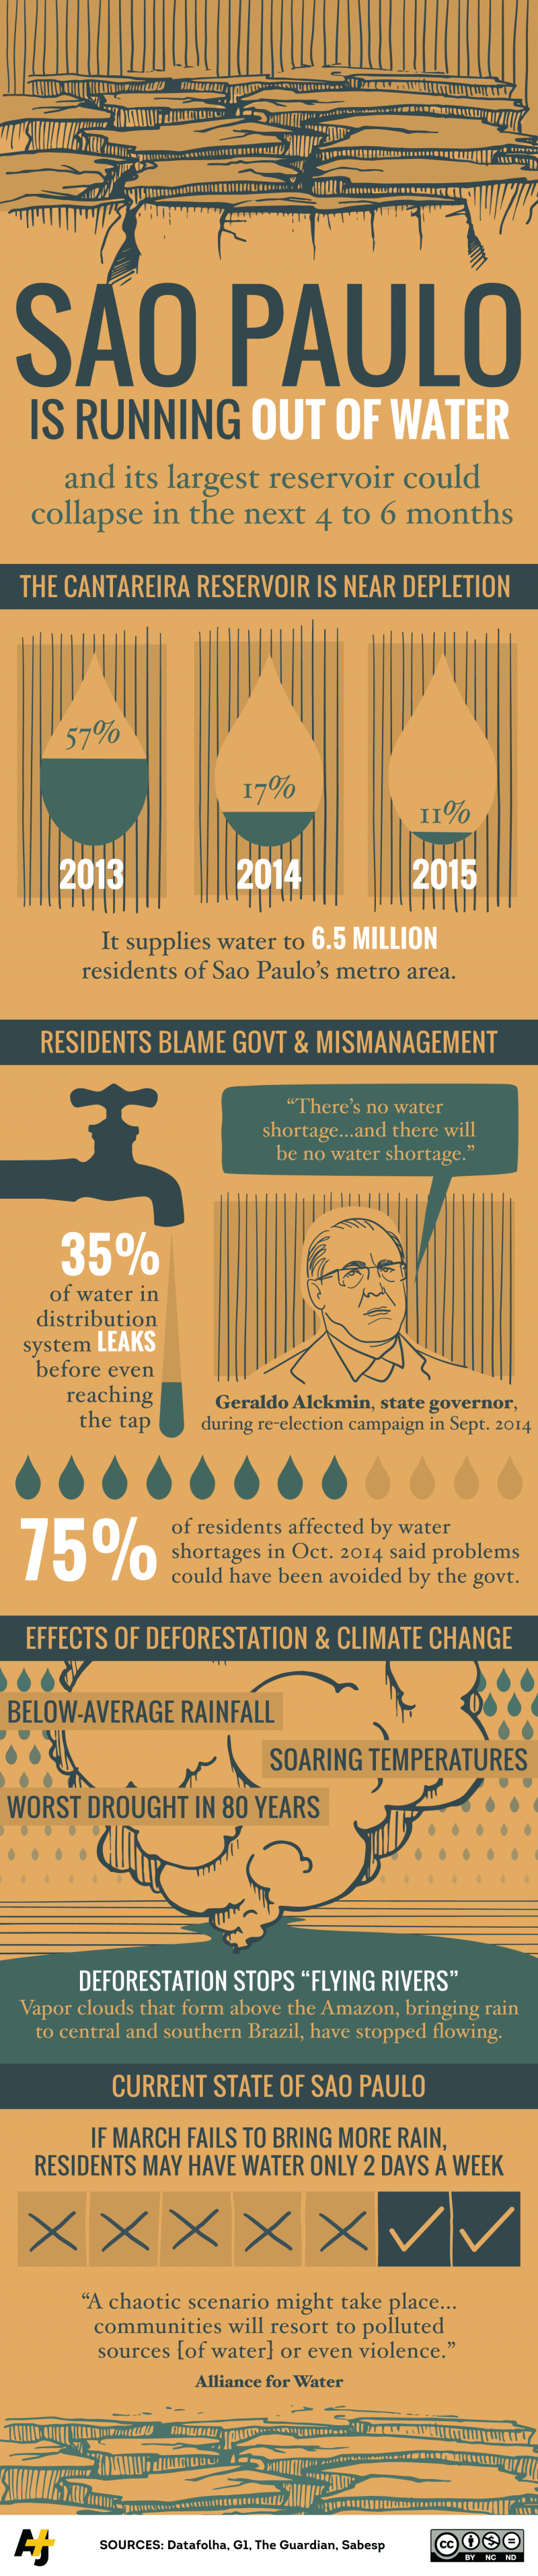 infographic_brazilwatercrisis_explainer_030215-e1458152149361.png